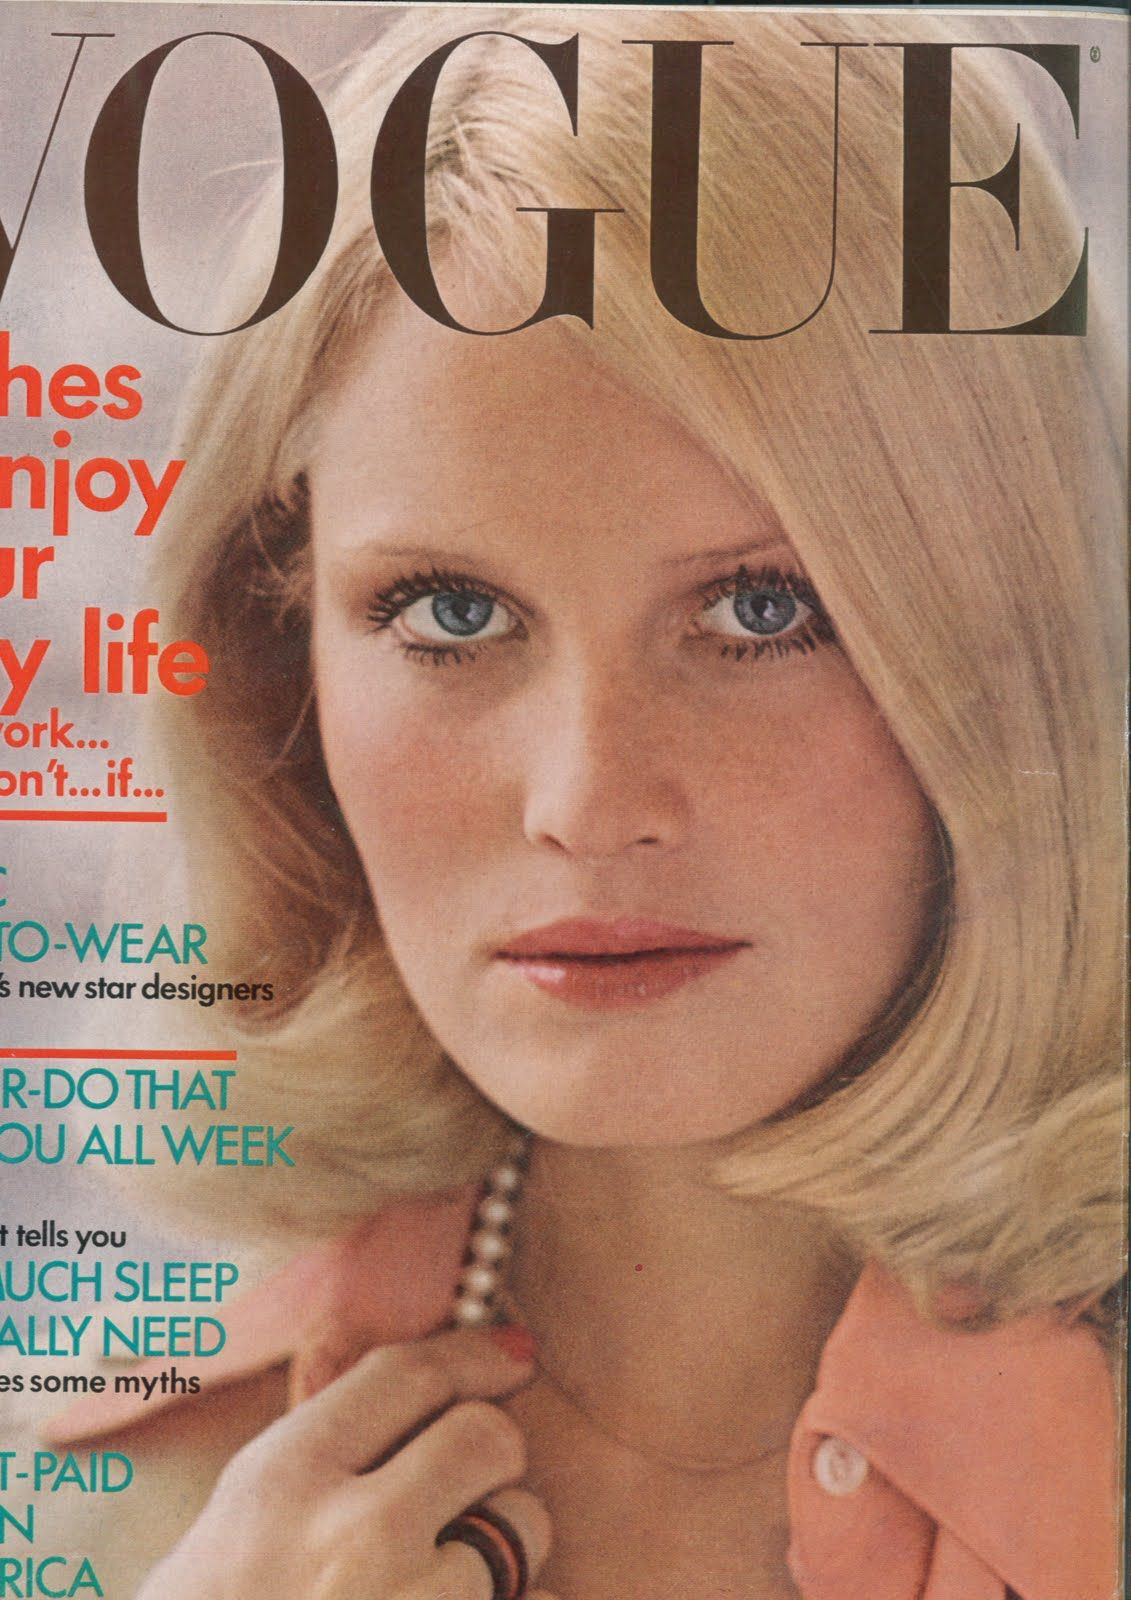 gunilla lindblad by gianni penati for vogue 1971 vogue clothes to enjoy your busy life cover model gunilla lindblad photographed by helmut newton diane sawyer by stephen paley pola viviane